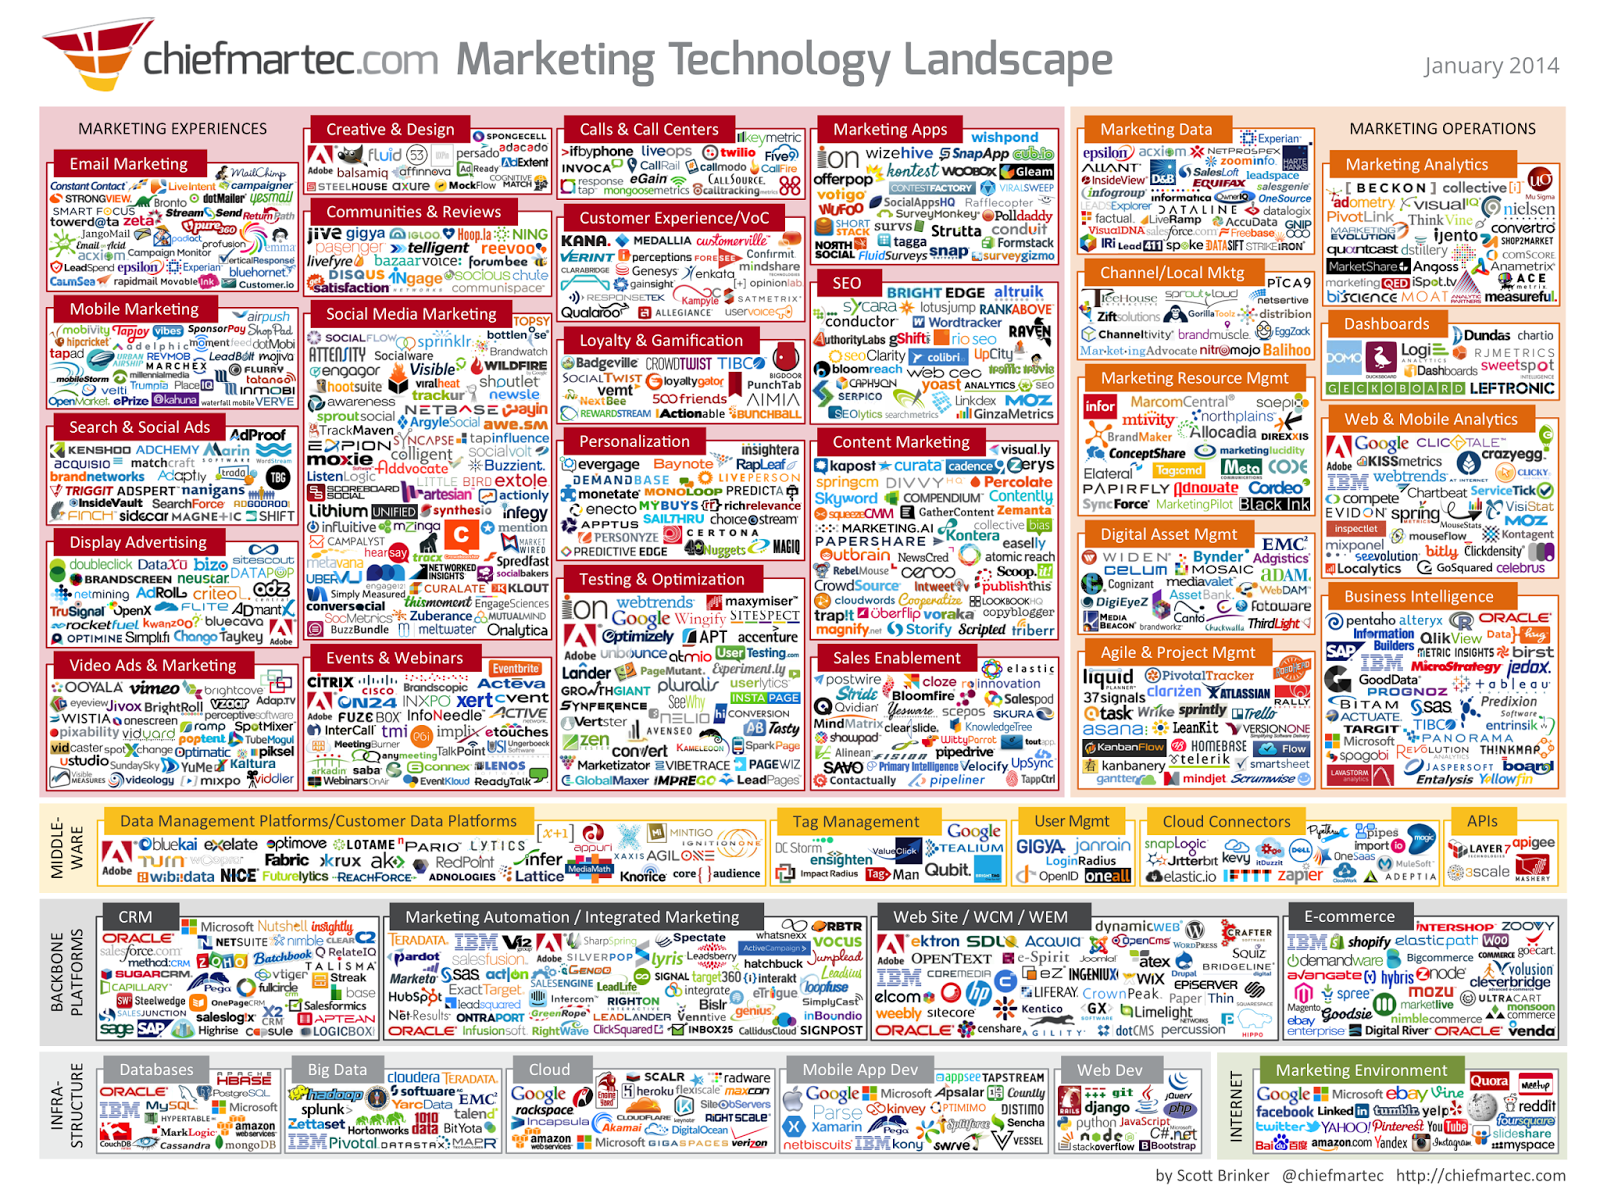 2014 Marketing Technology Landscape by chiefmartec.com